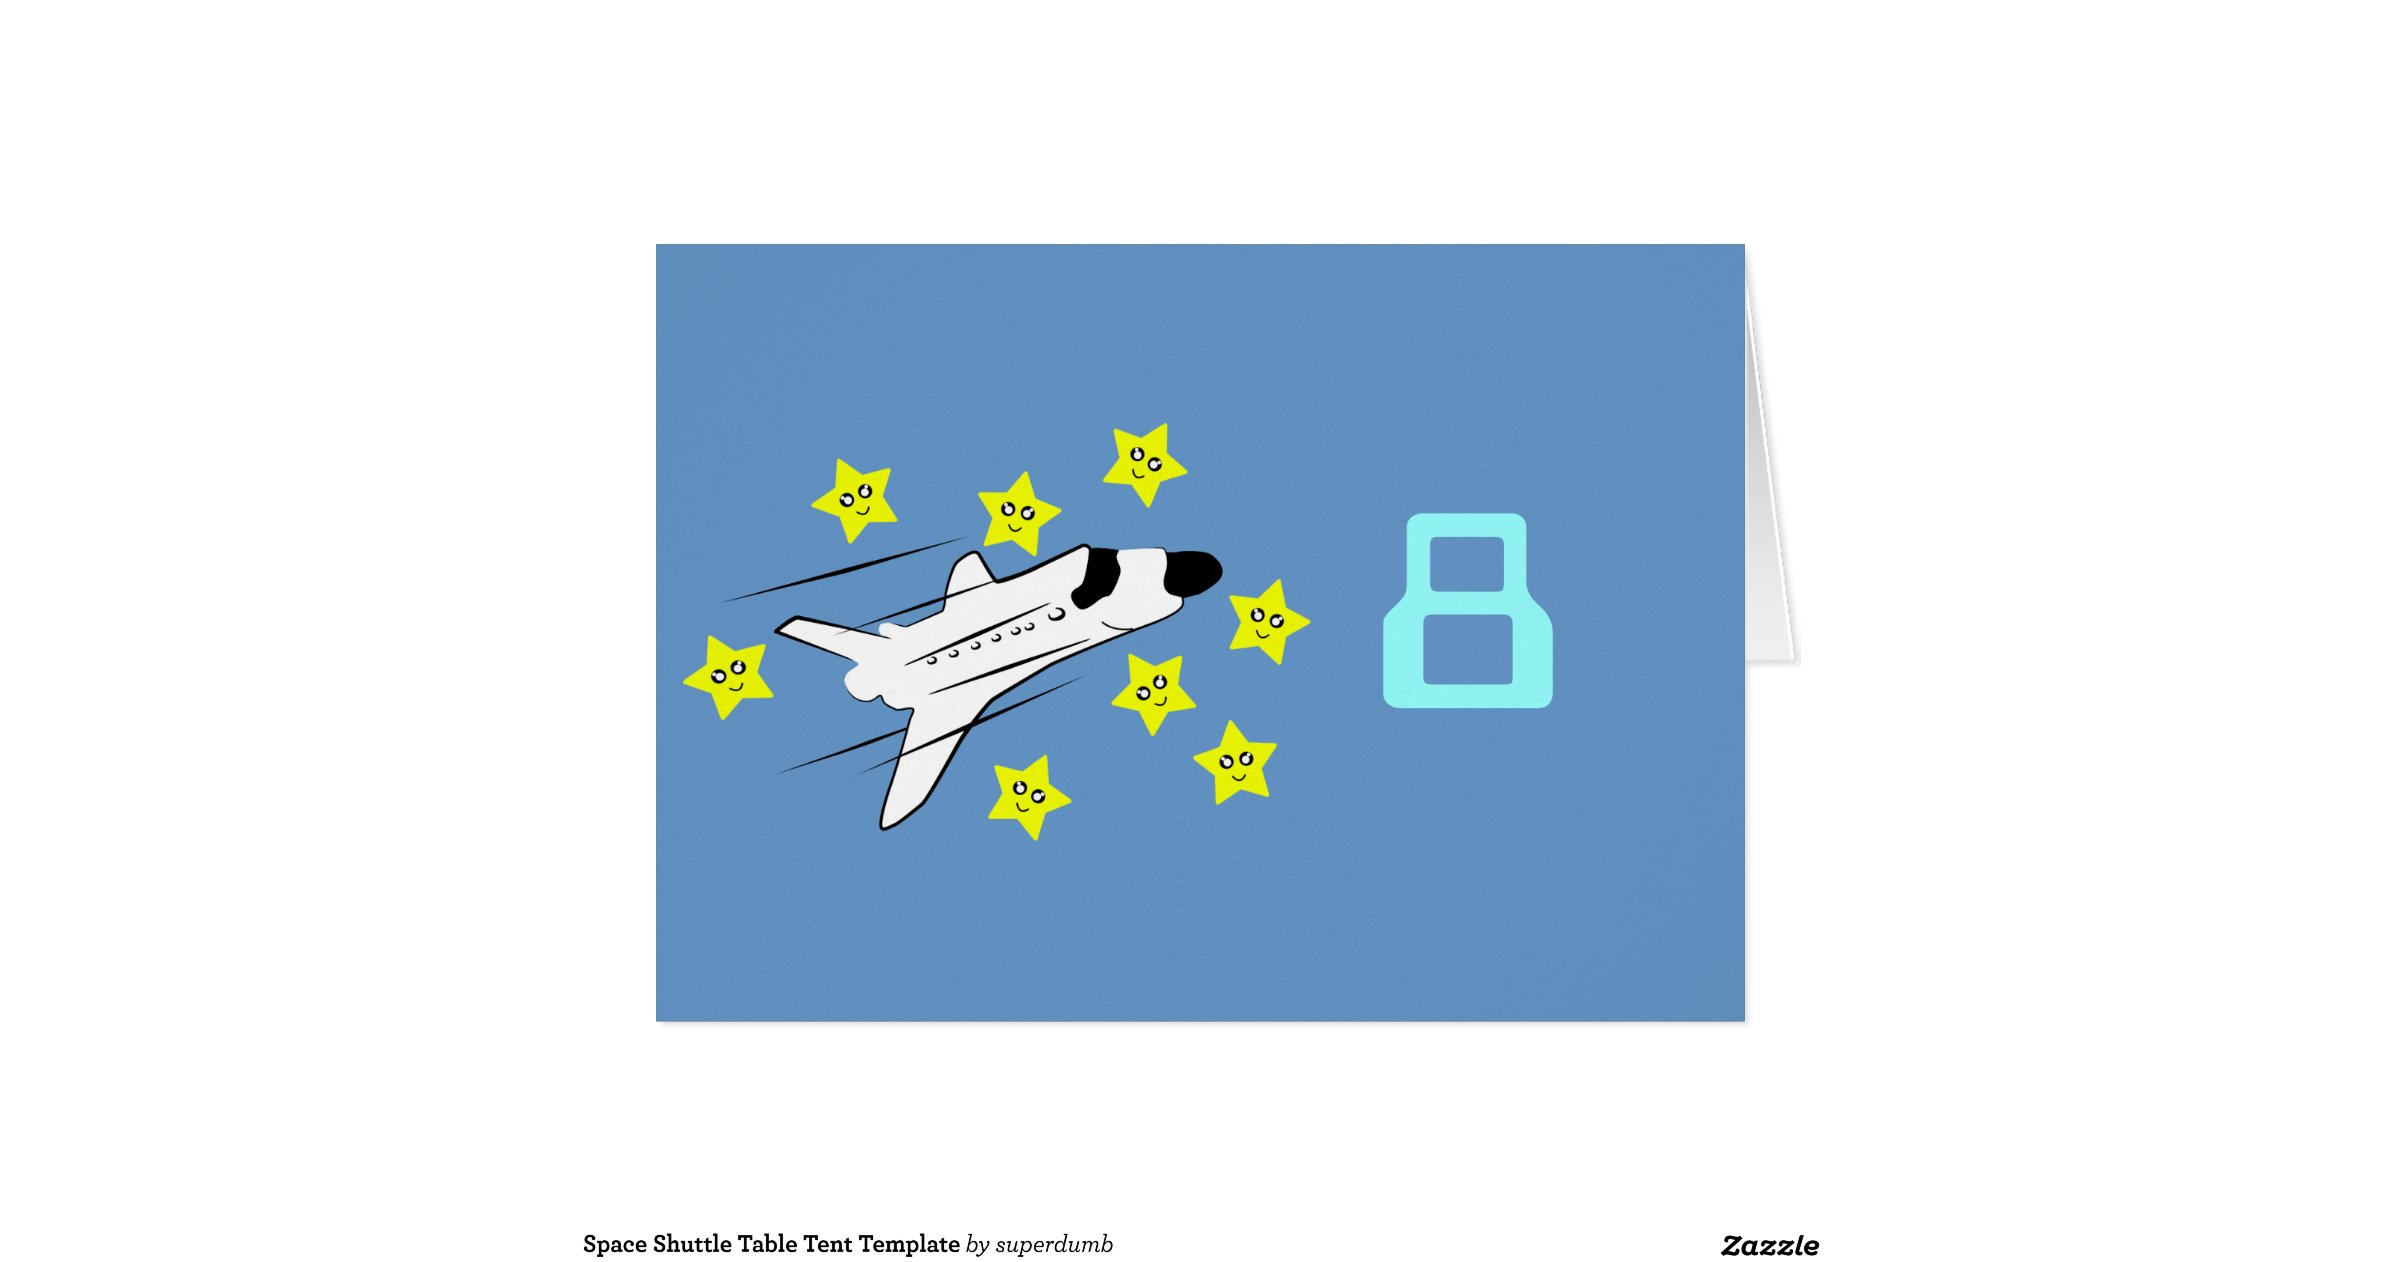 space_shuttle_table_tent_template_greeting_card rgrEcHNK